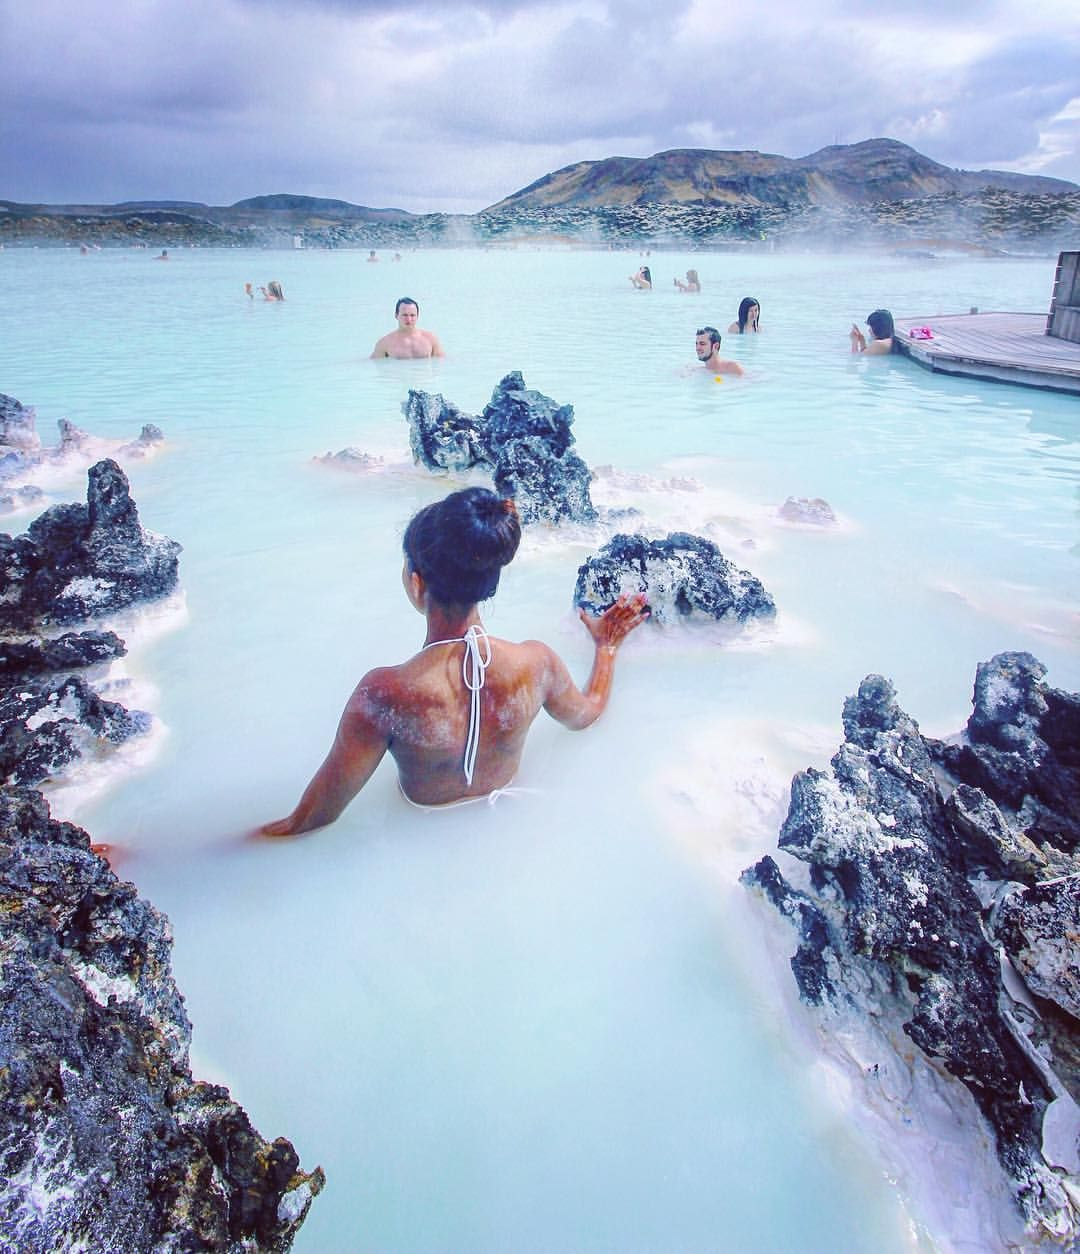 12 Best Island Images On Pinterest: Blue Lagoon, Iceland // @melissa.larissa Via Instagram